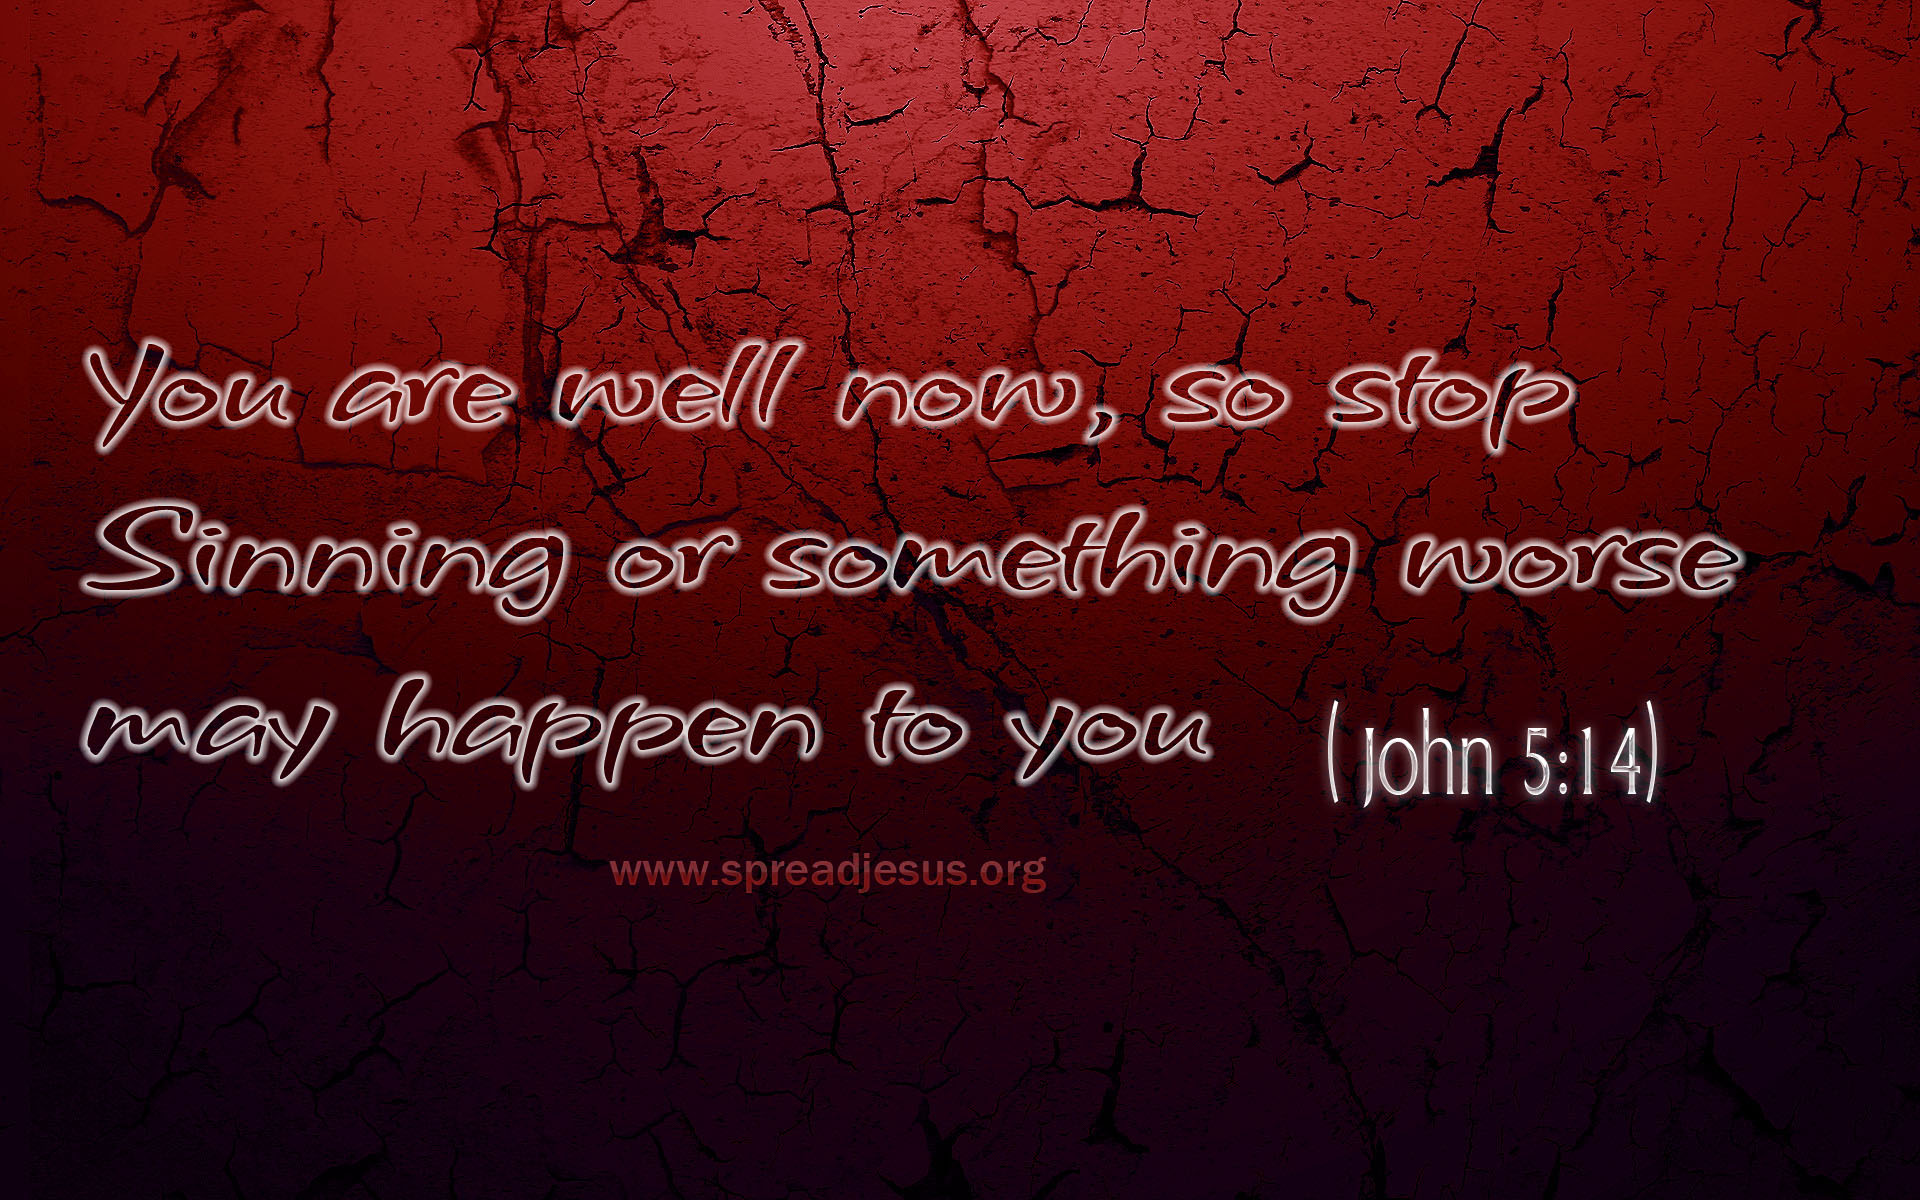 JOHN 5:14-Bible Quotes HD-WALLPAPERS DOWNLOAD You are well now,So stop Sinning or something worse may happen to you (JOHN 5:14)